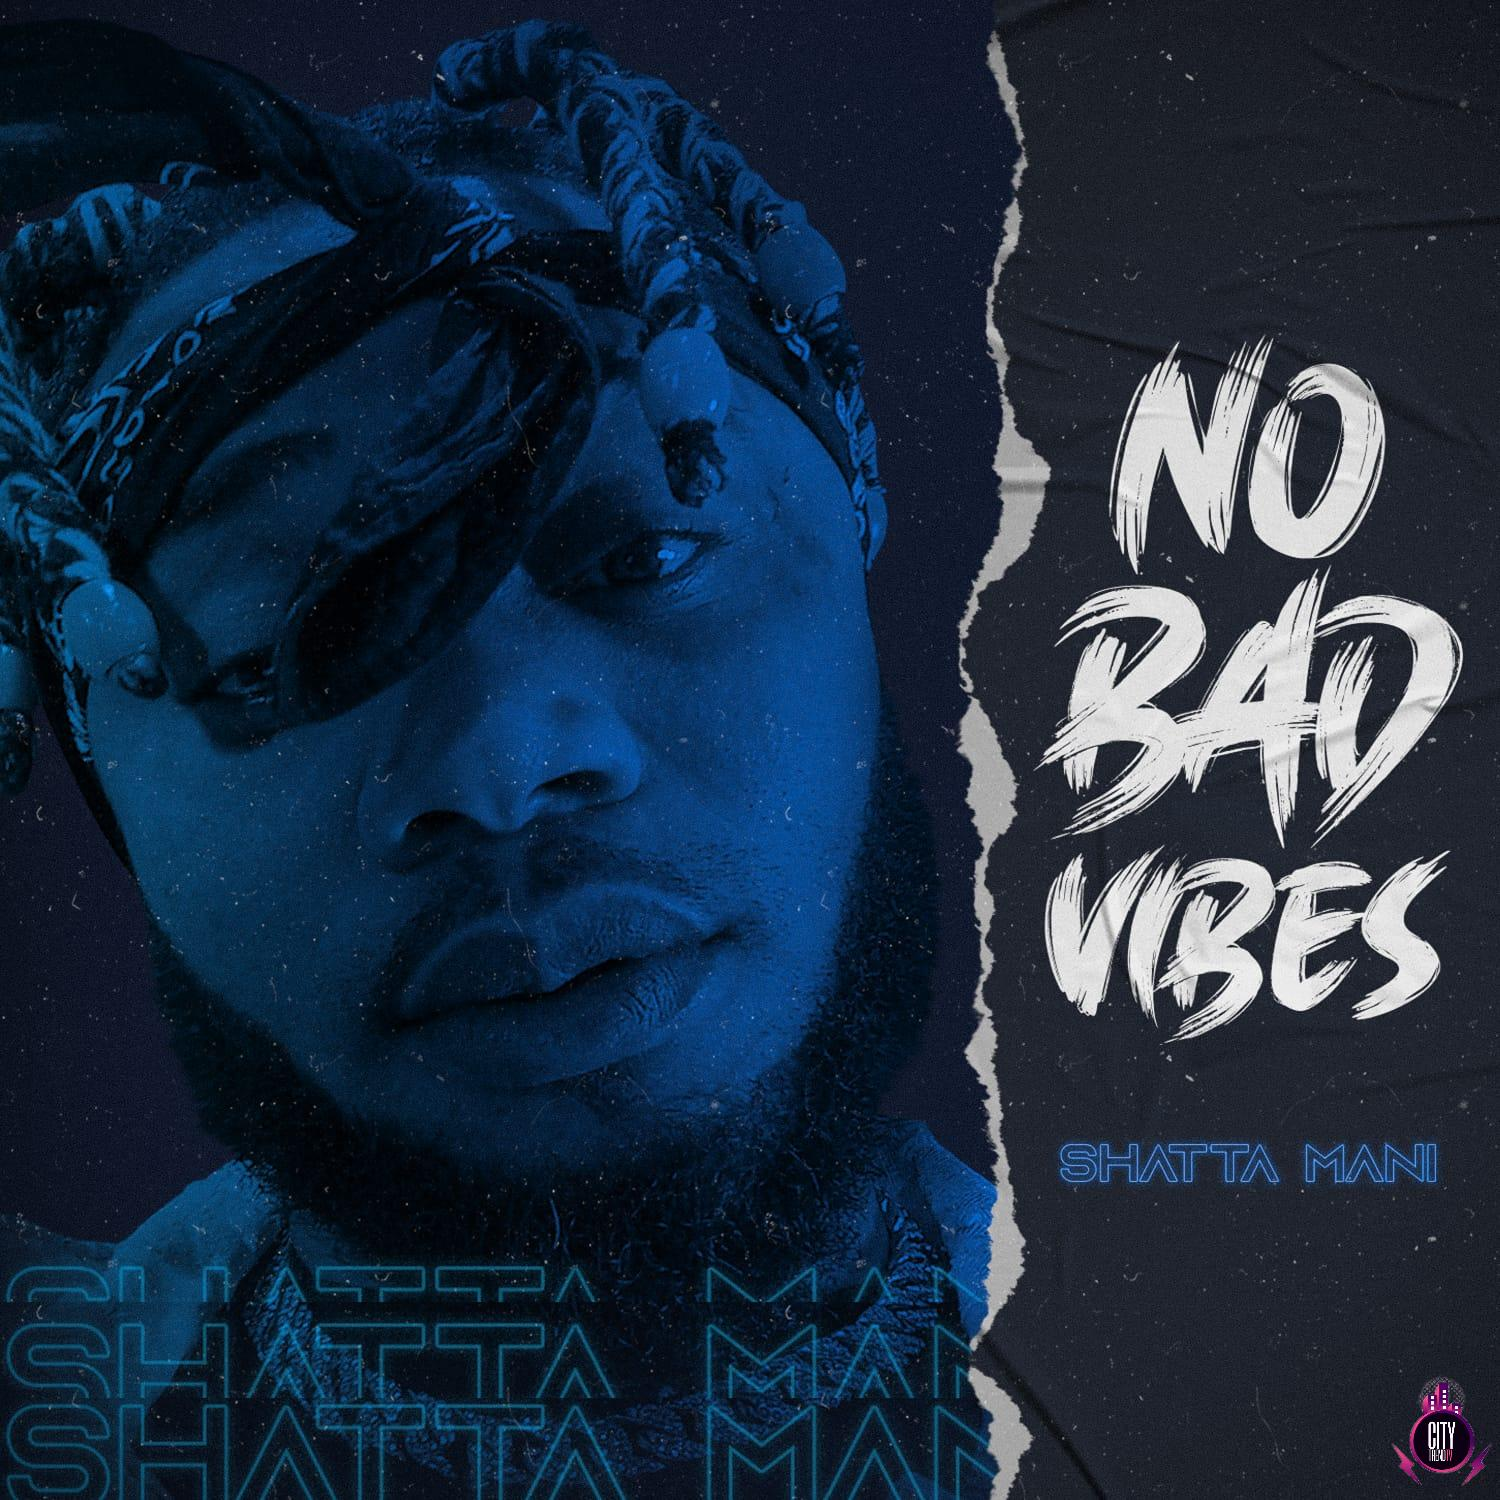 Download Shatta Mani – No Bad Vibes (Complete EP)